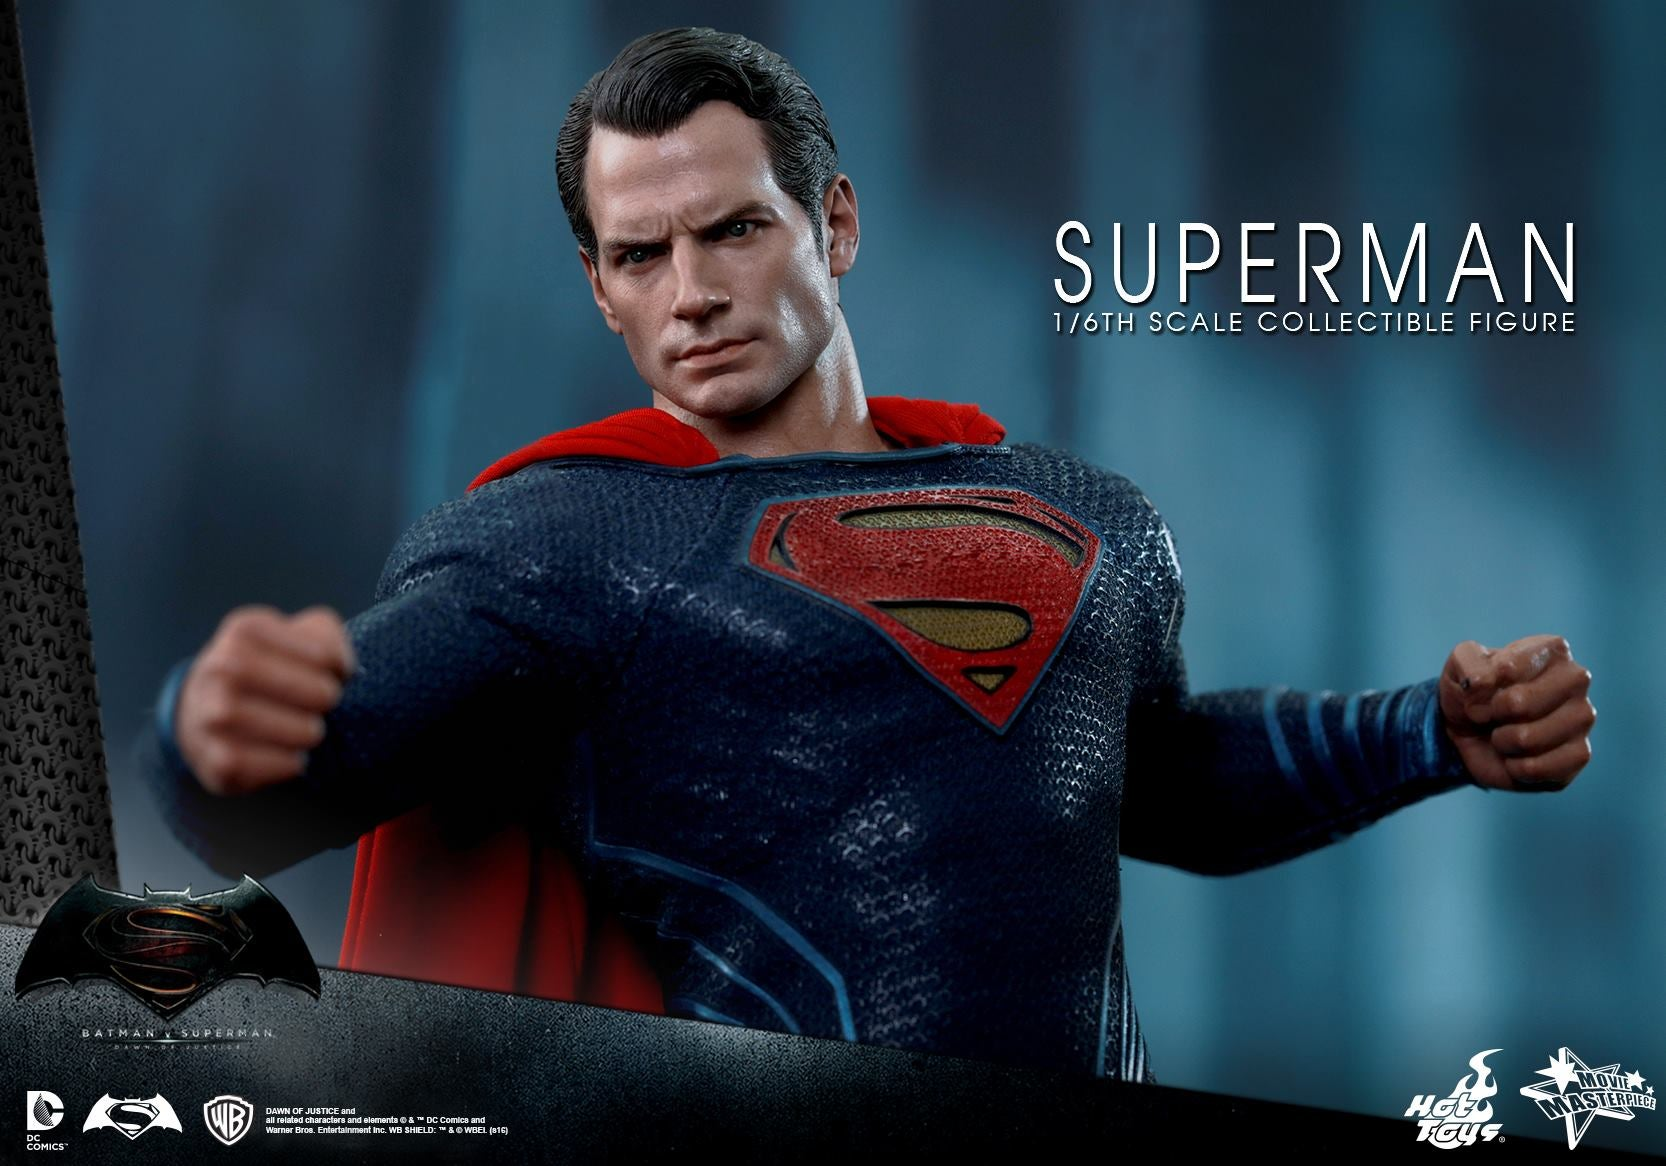 [Action Figures] Todo sobre Action Figures, Hot Toys, Sideshows - Página 6 Bvs-hot-toys-superman-11-162896